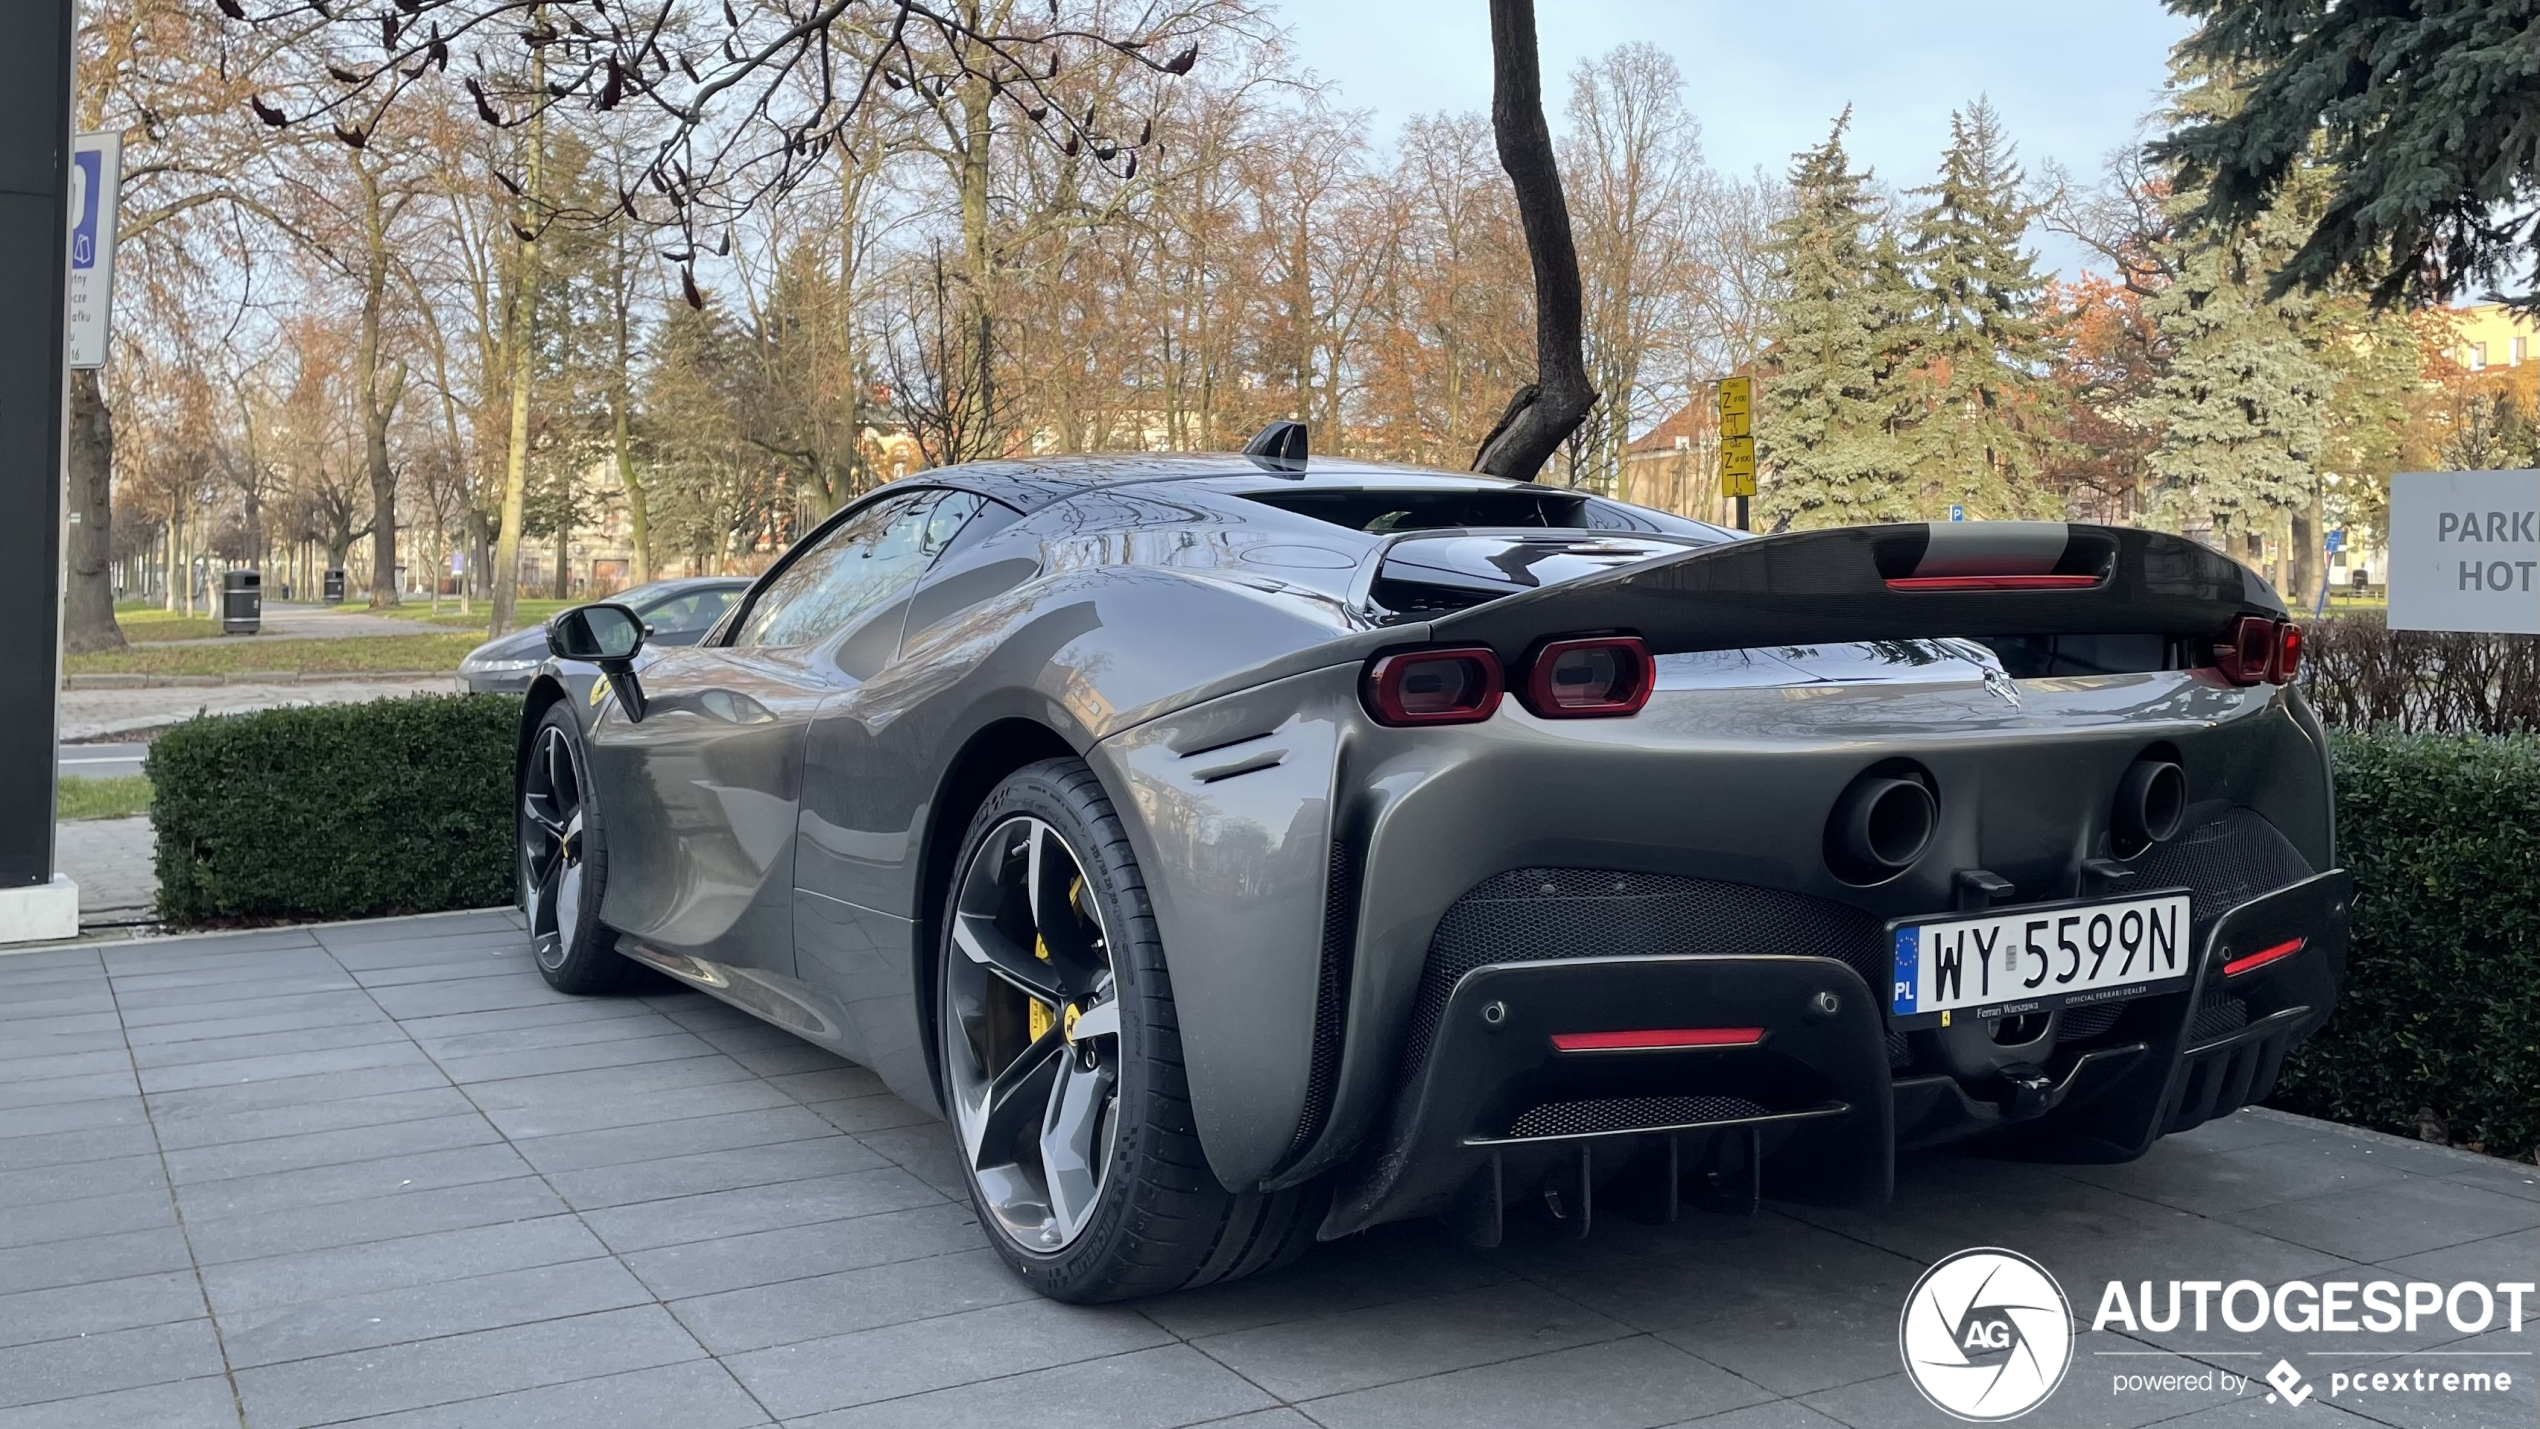 Poland received a Ferrari SF90 Stradale Assetto Fiorano